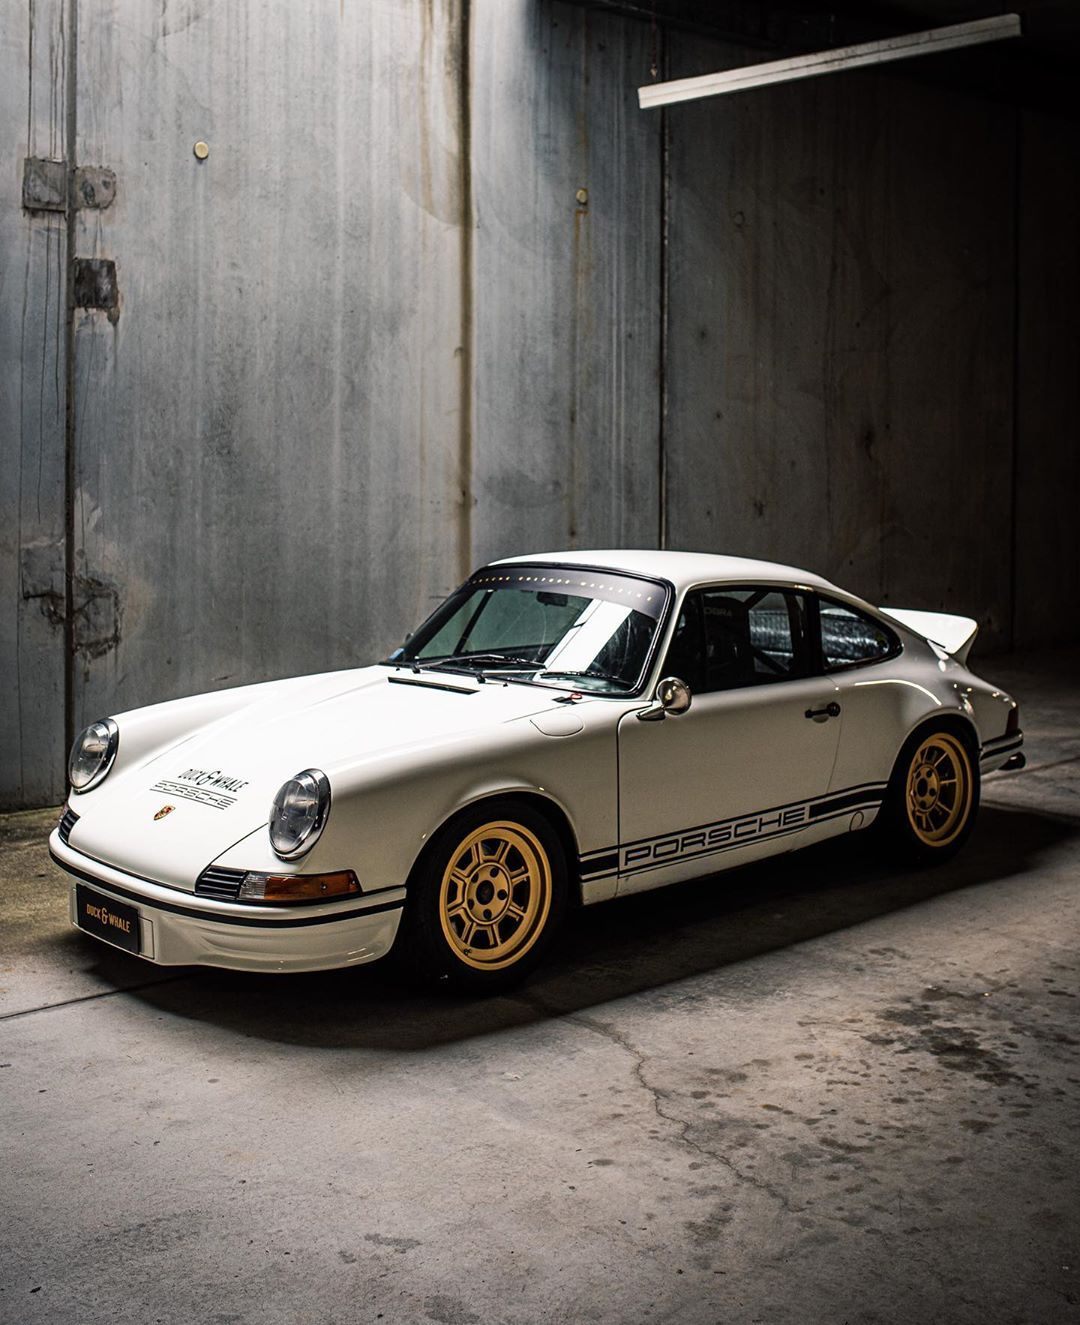 Duck Whale Magazine No Instagram Industrial Light Bank Surprise Car Park Photoshoot Venue Of The Year New Track Setup Groupe4wheels 16 Pag Campagnolo